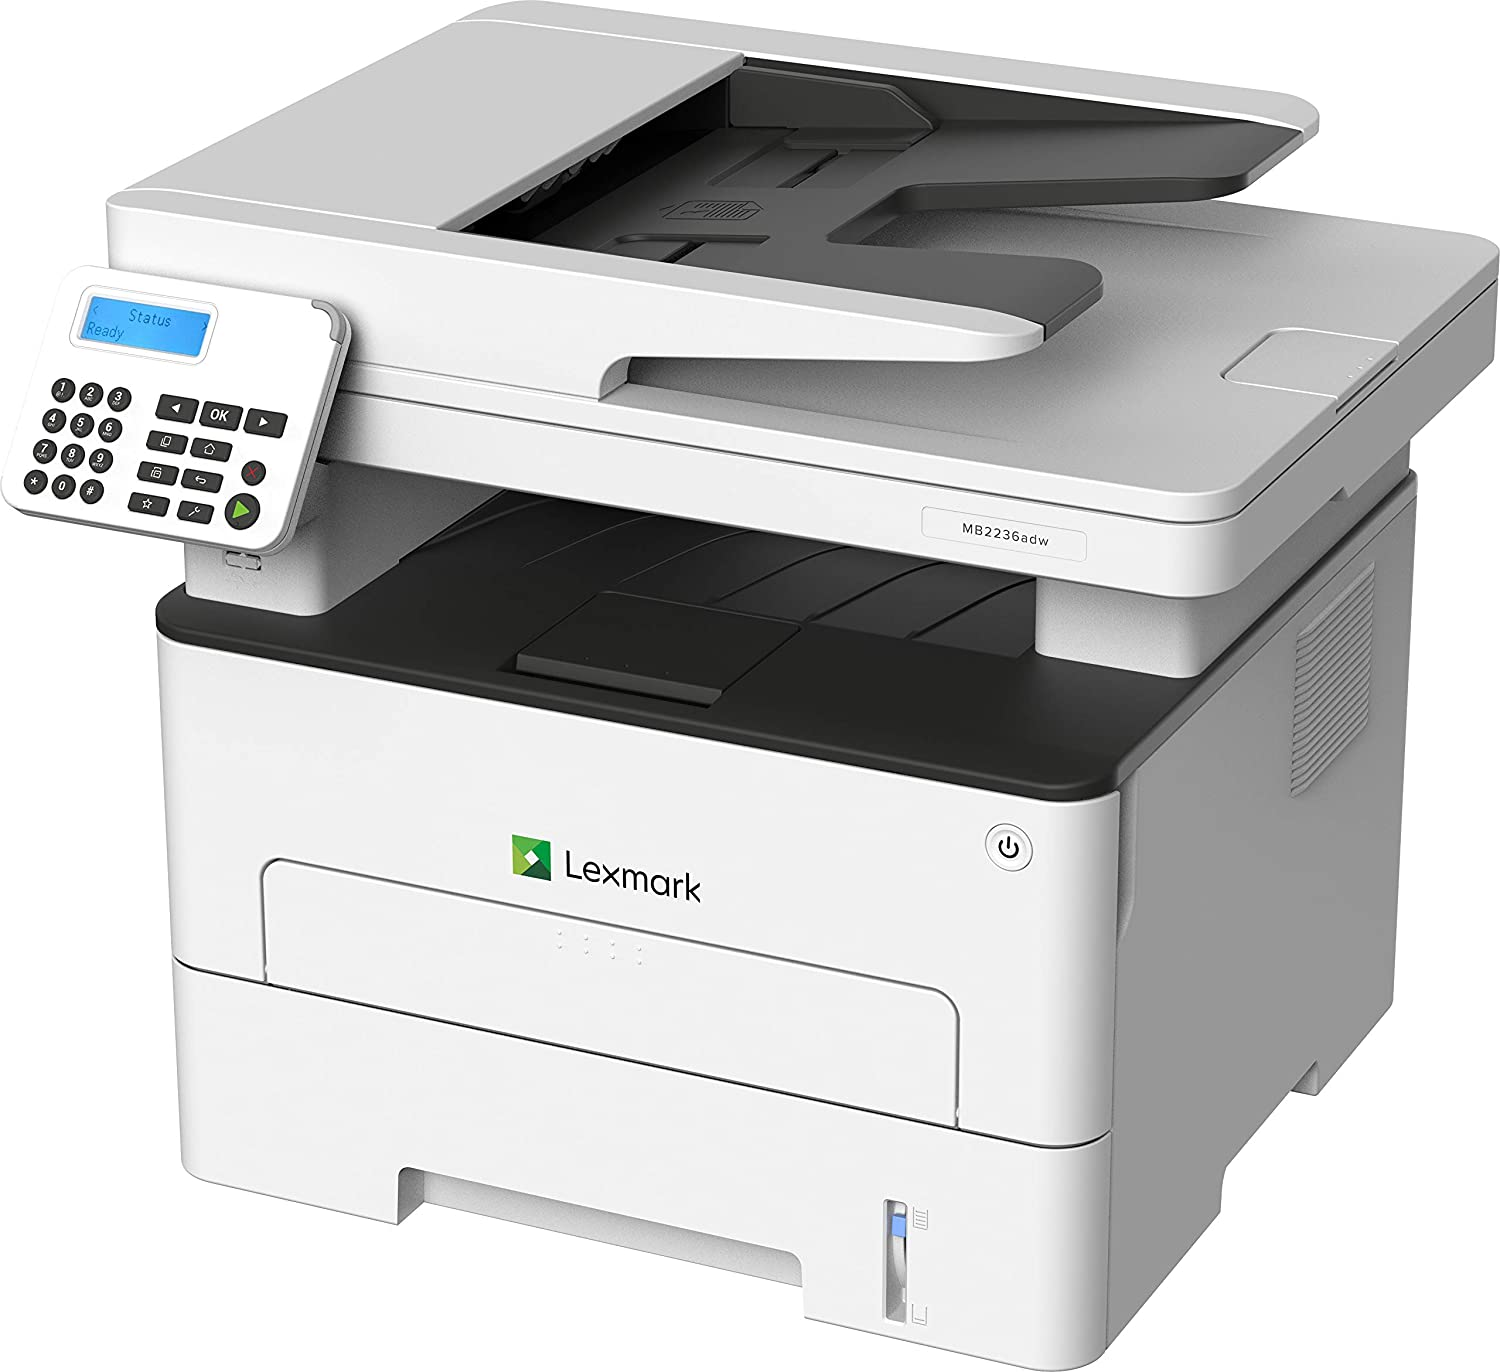 Lexmark MB2236adw Multifunction Laser Printer, Monochrome, Wireless Networking with Duplex Printing (18M0400)